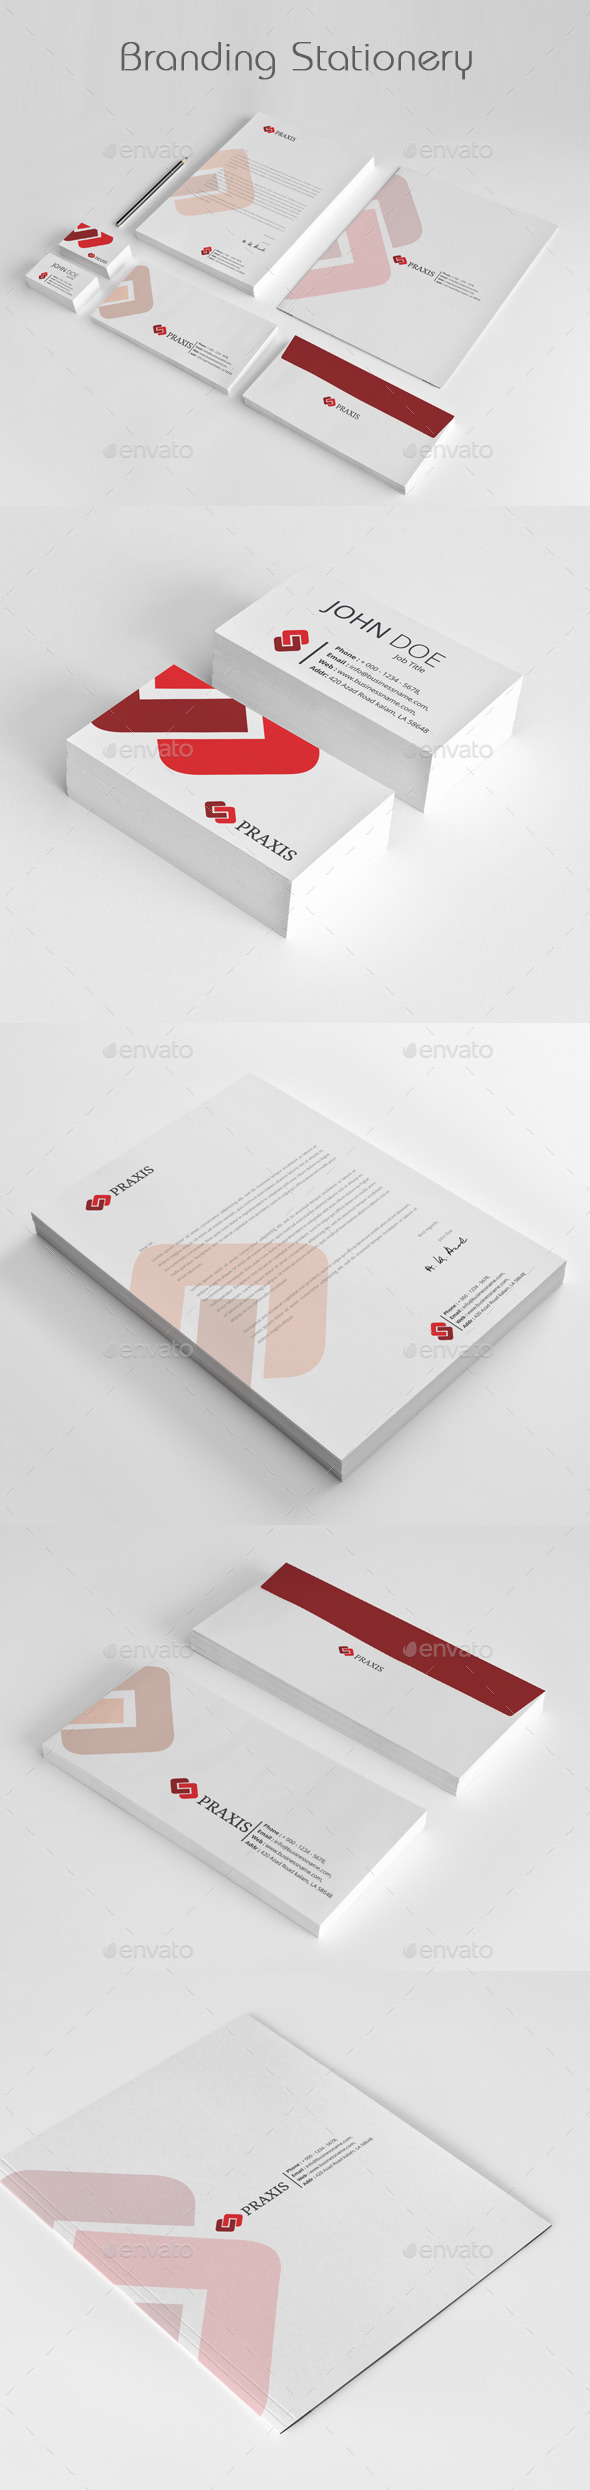 GraphicRiver Branding Stationery Templates 11907005